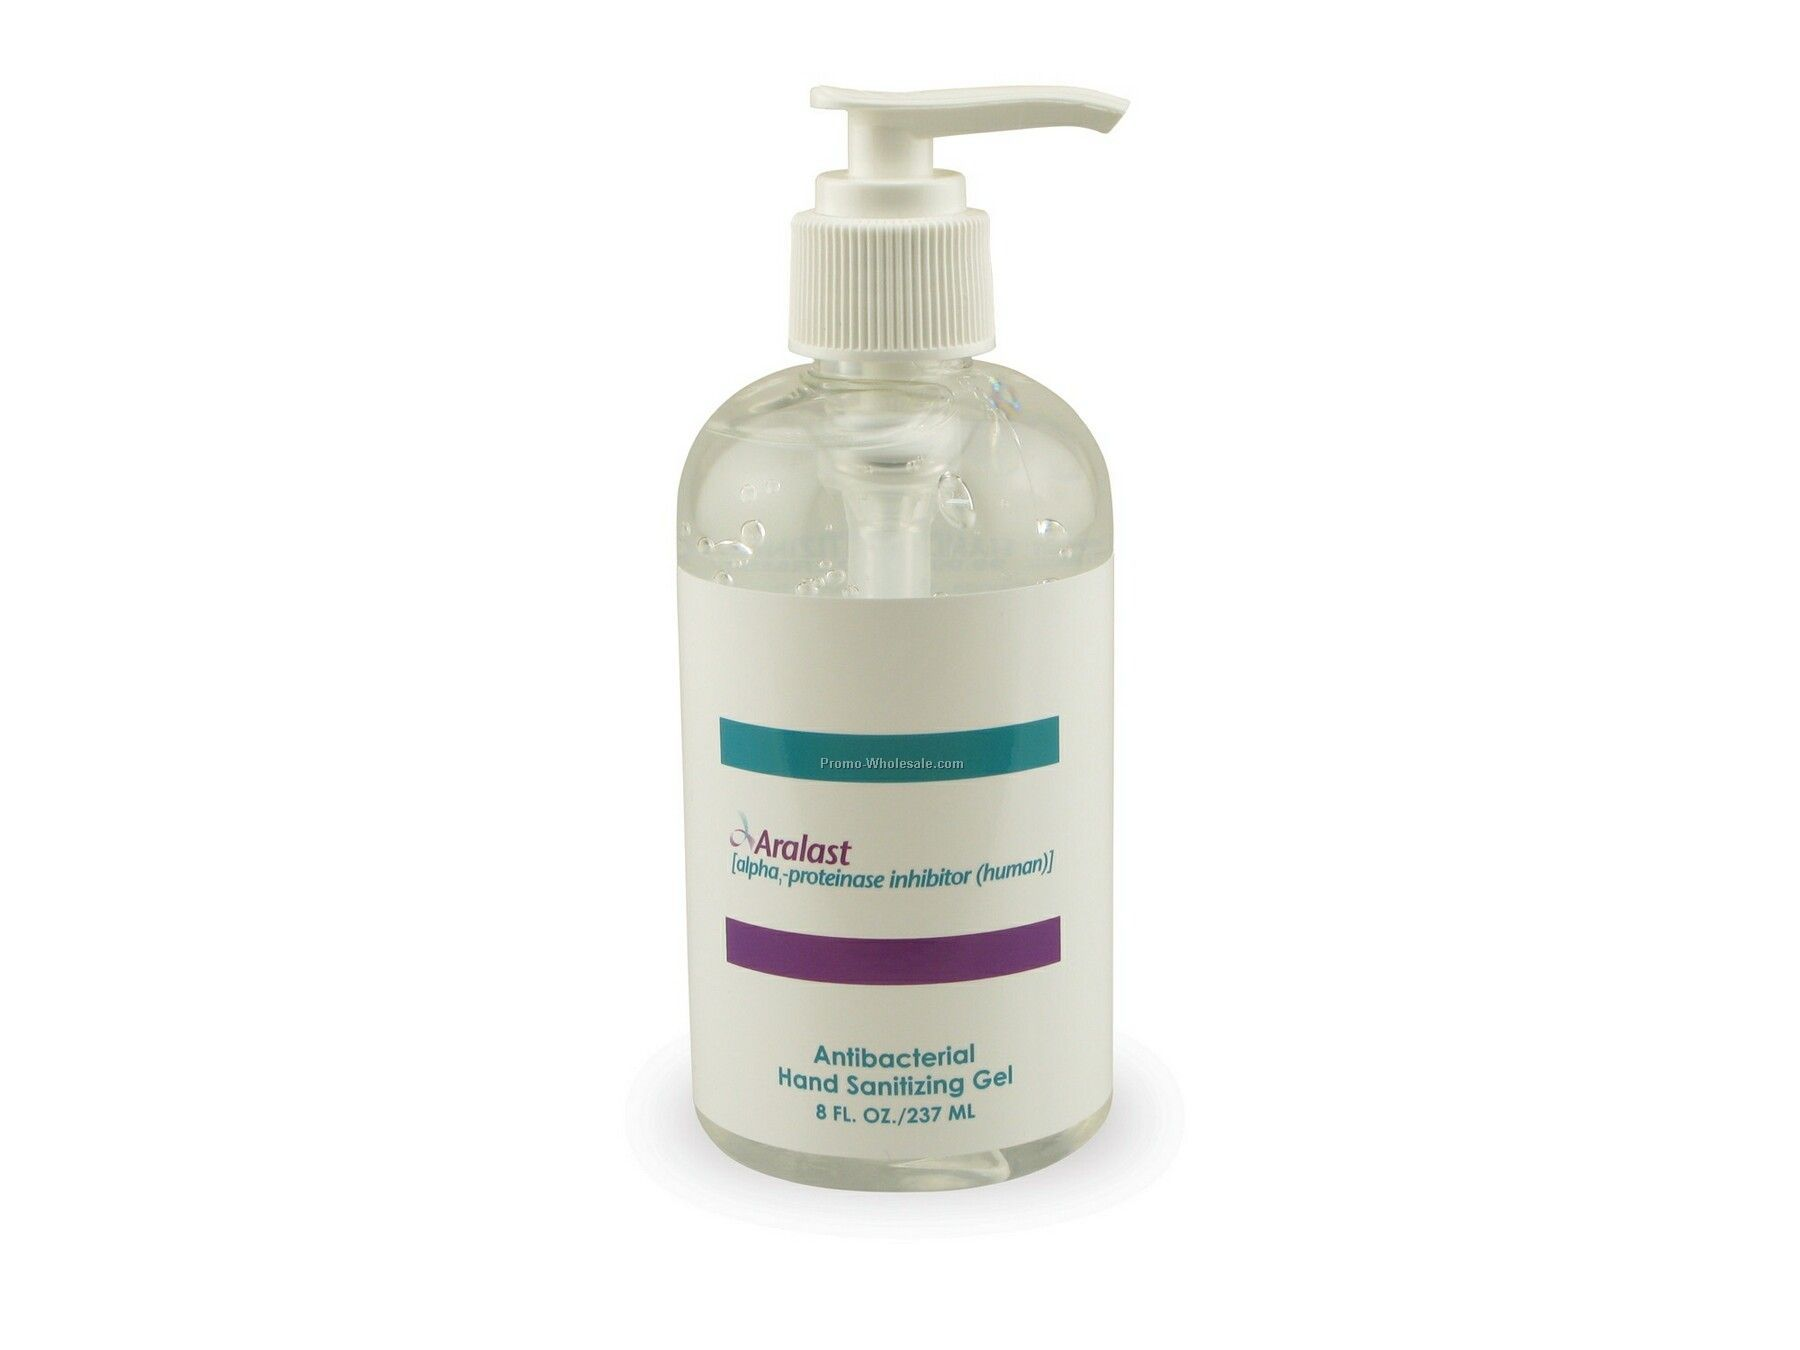 8 Oz. Boston Round Pumps - Antibacterial Liquid Soap